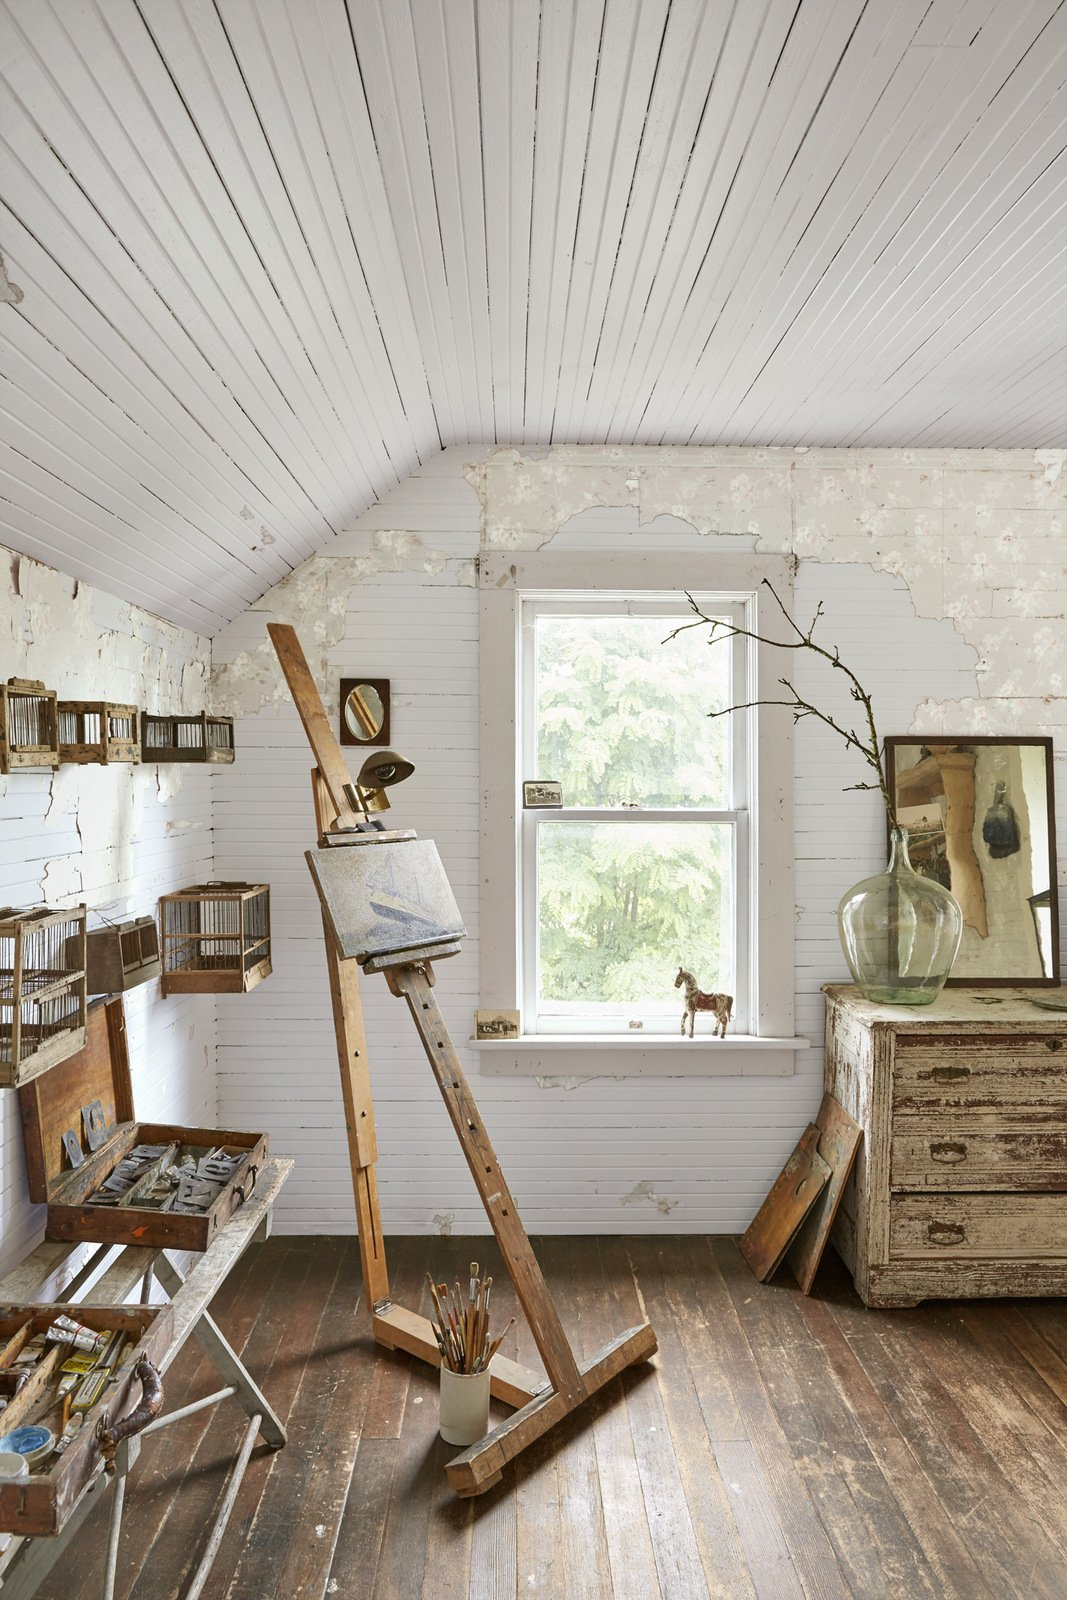 #13 Keep the peeling wallpaper. - It gives texture and character to a space.